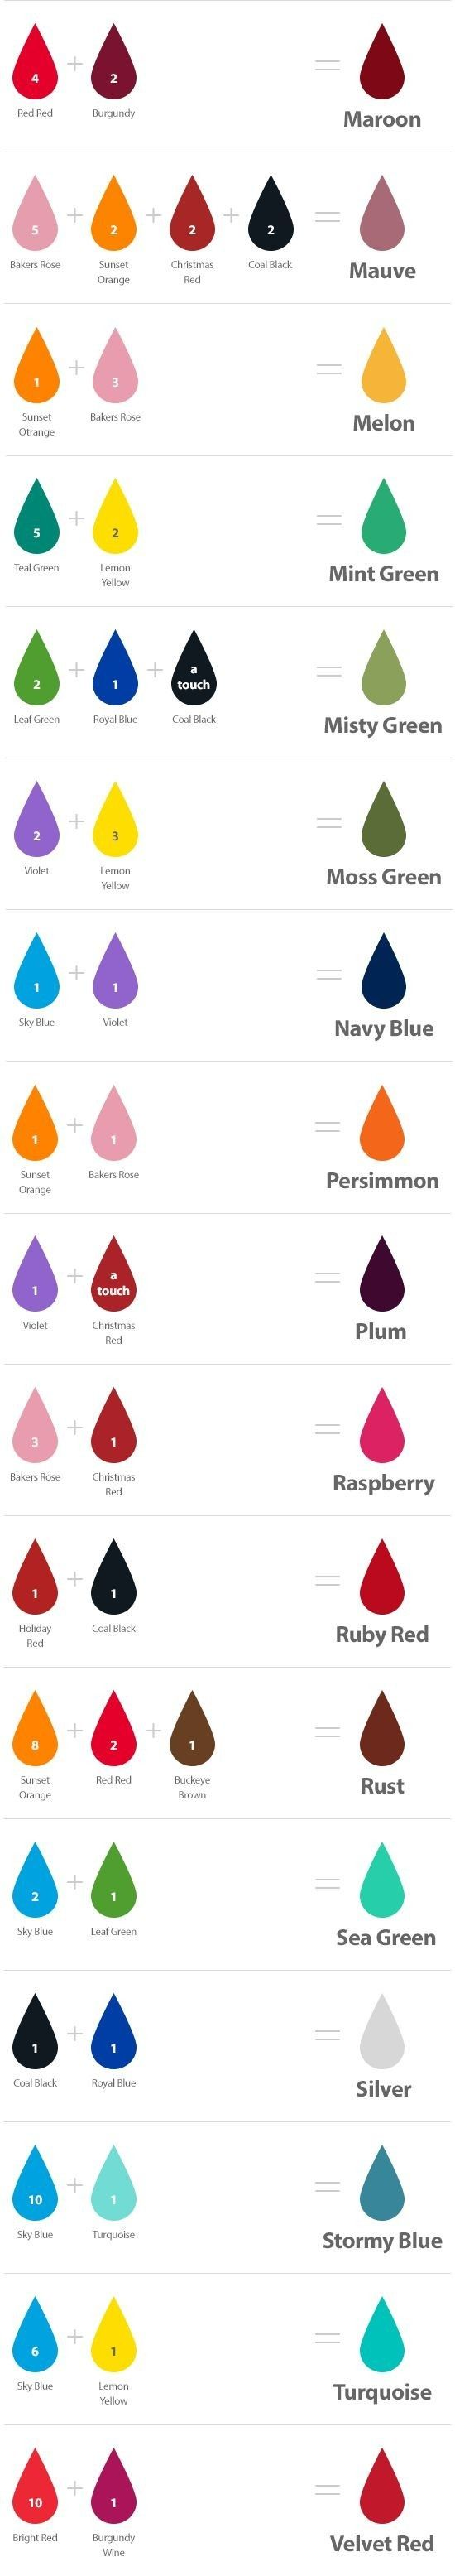 How to make shades of different colors